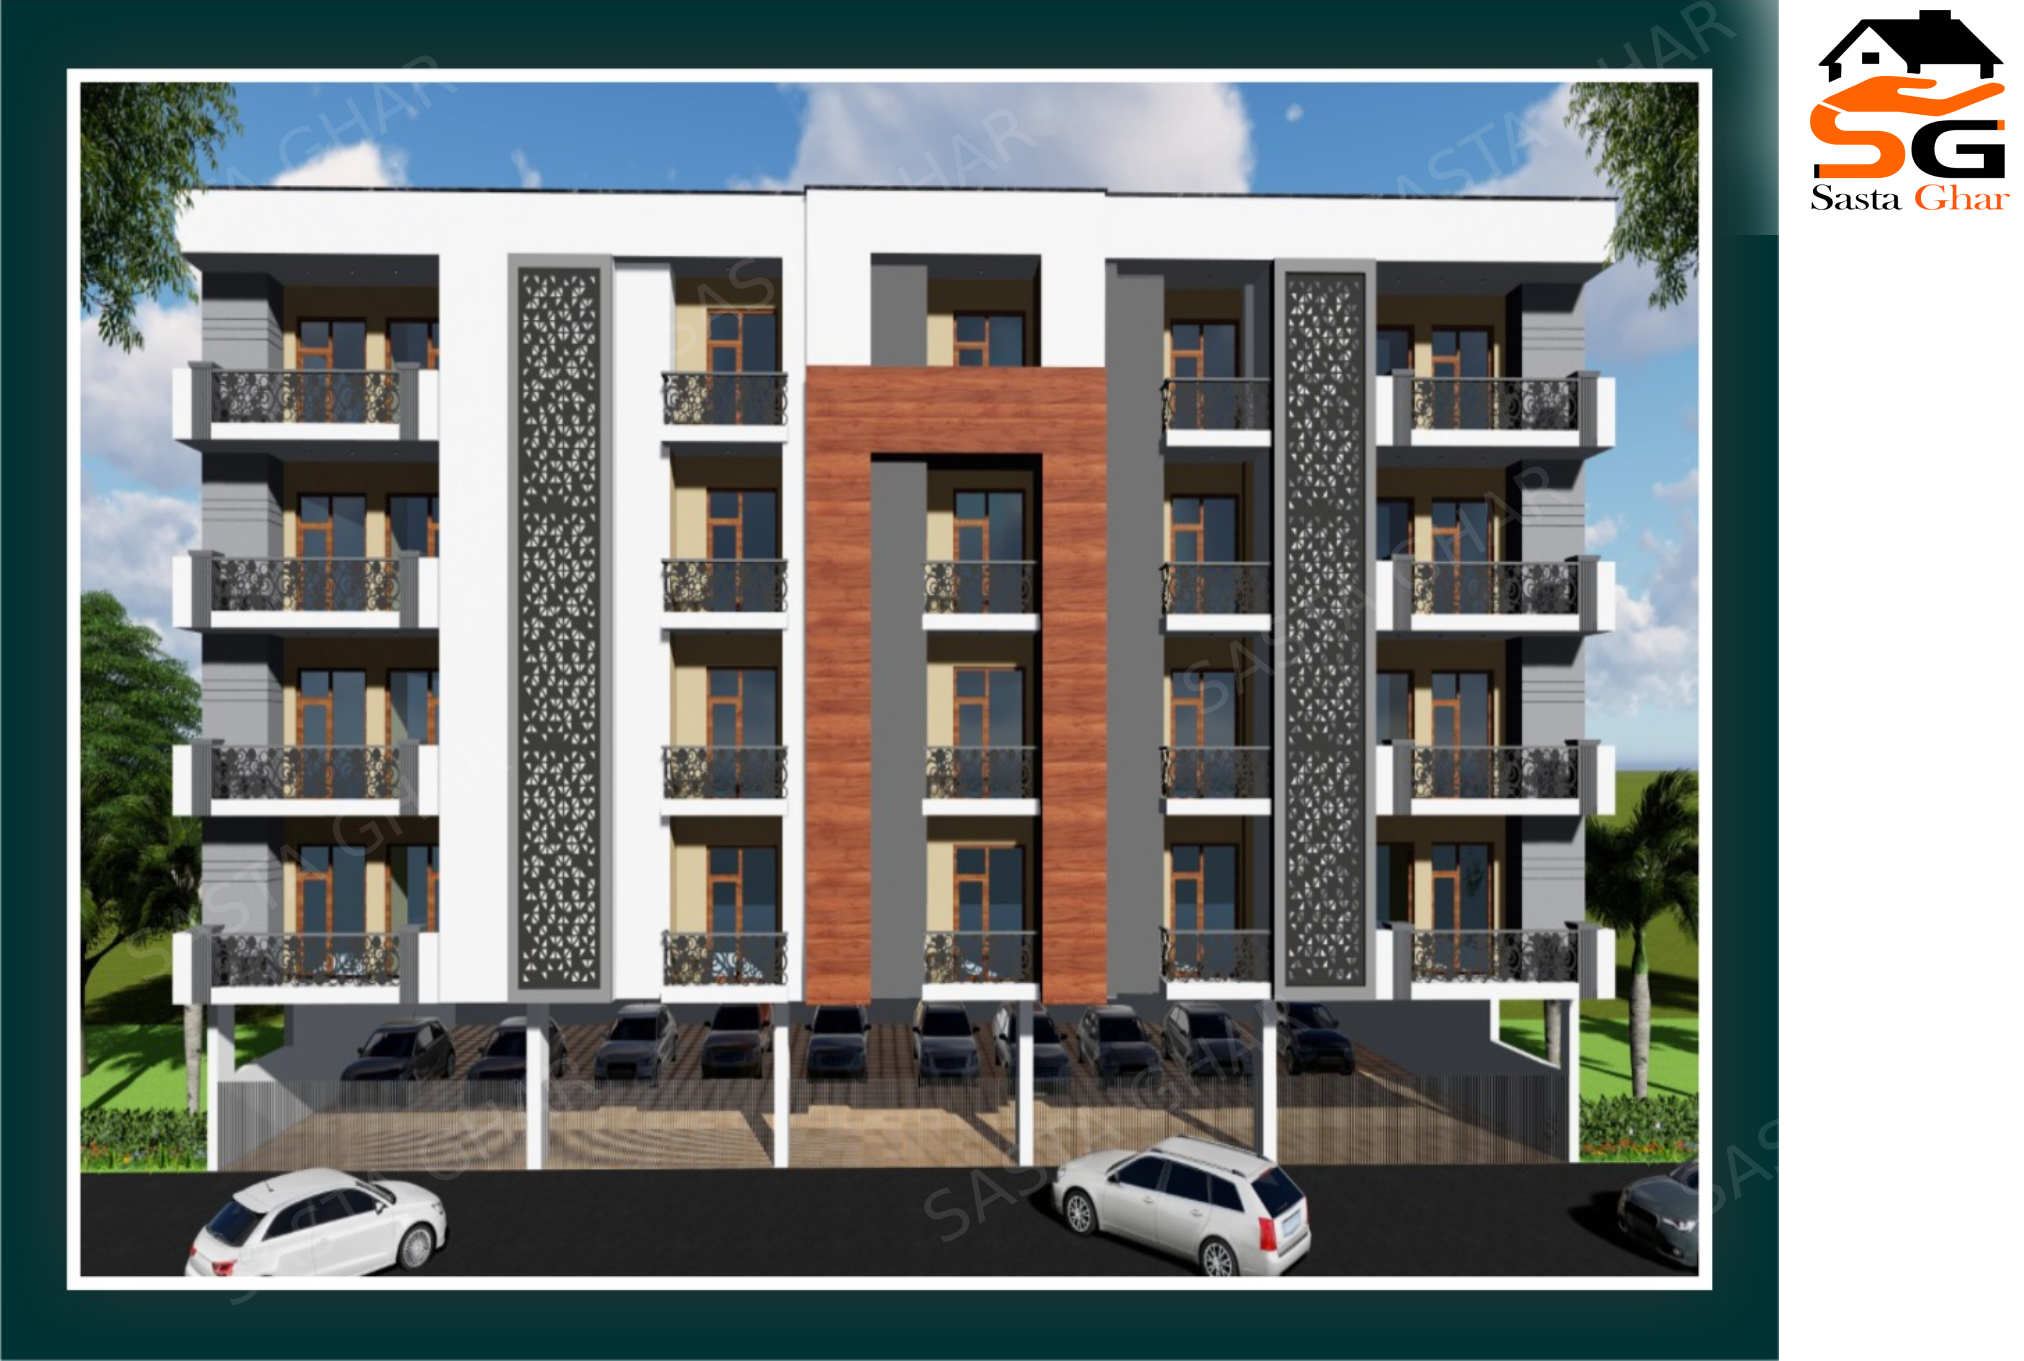 2 & 3 BHK Flats Near Metro Station Image